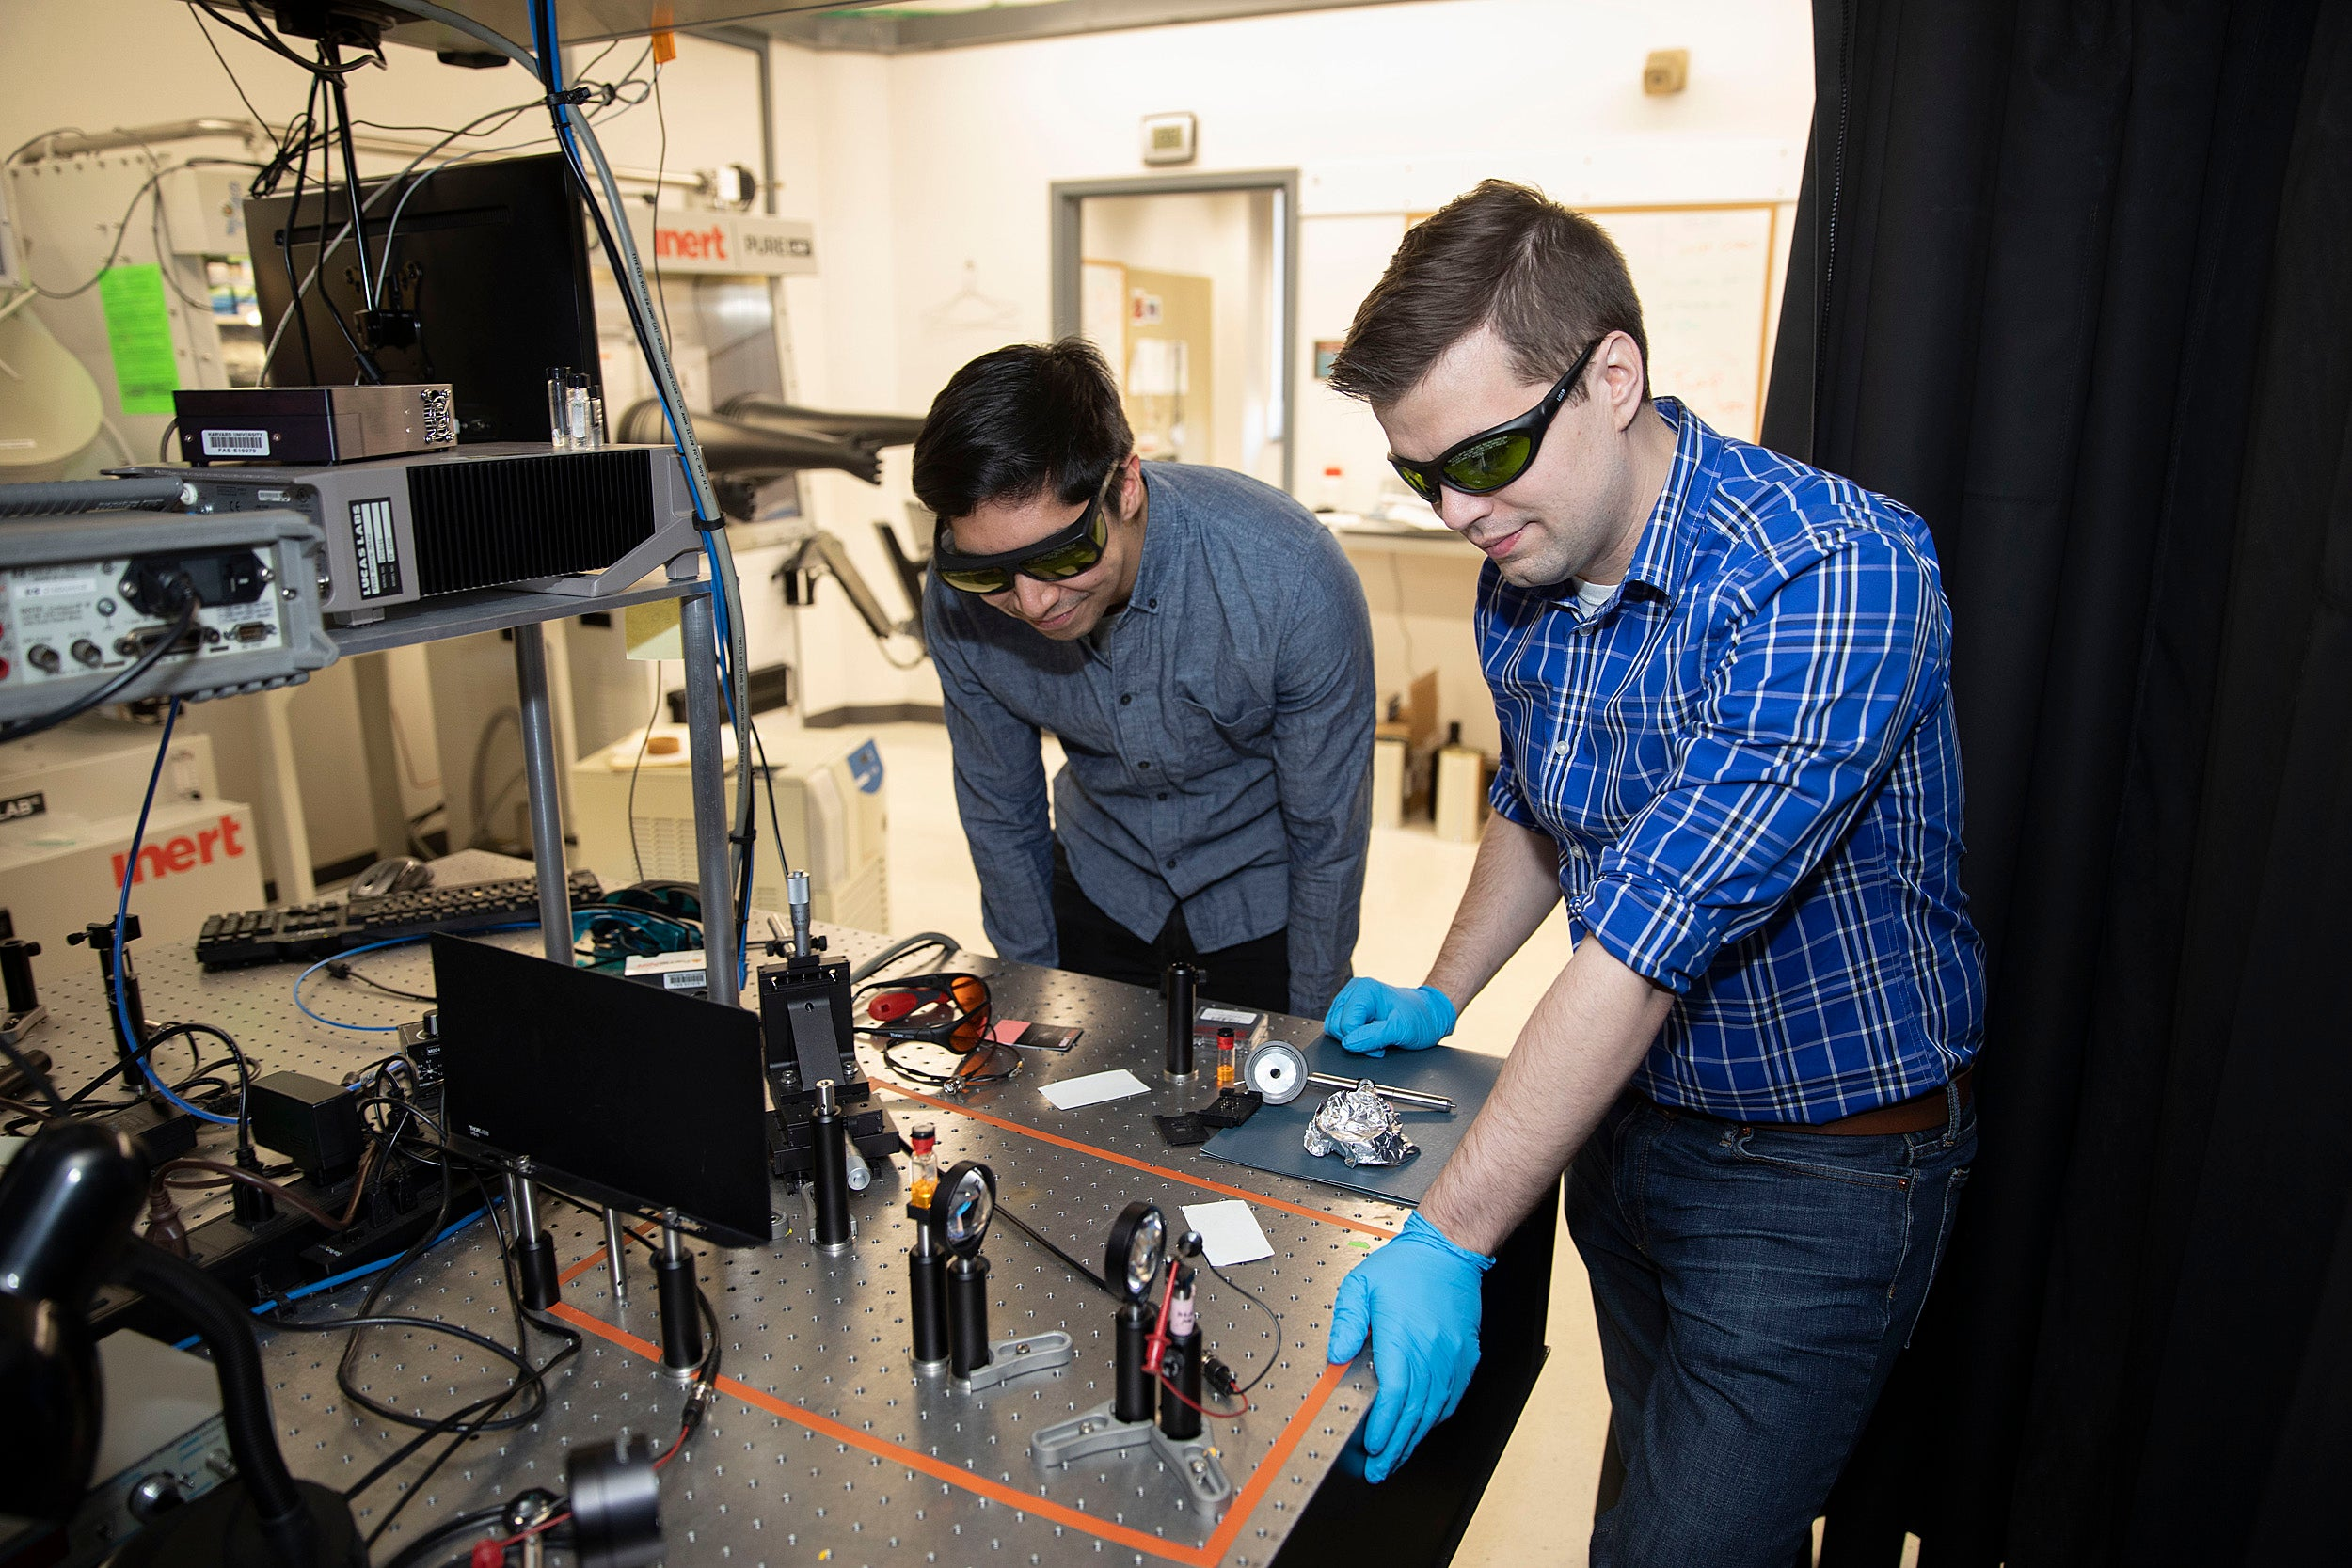 Dan Congreve and Andrew Pun work in the lab.